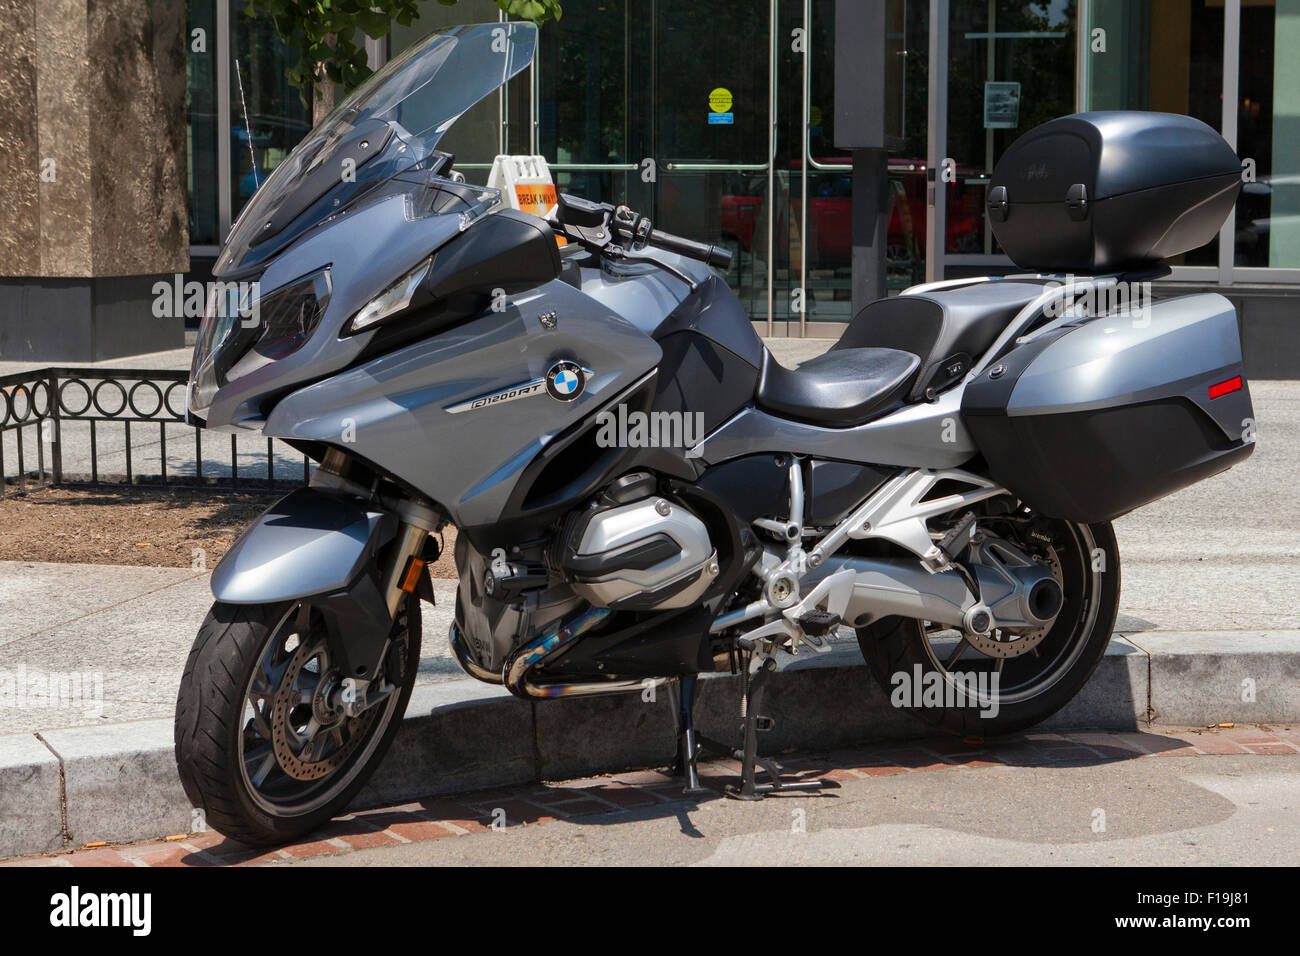 bmw r1200rt sport touring motorcycle parked usa stock. Black Bedroom Furniture Sets. Home Design Ideas